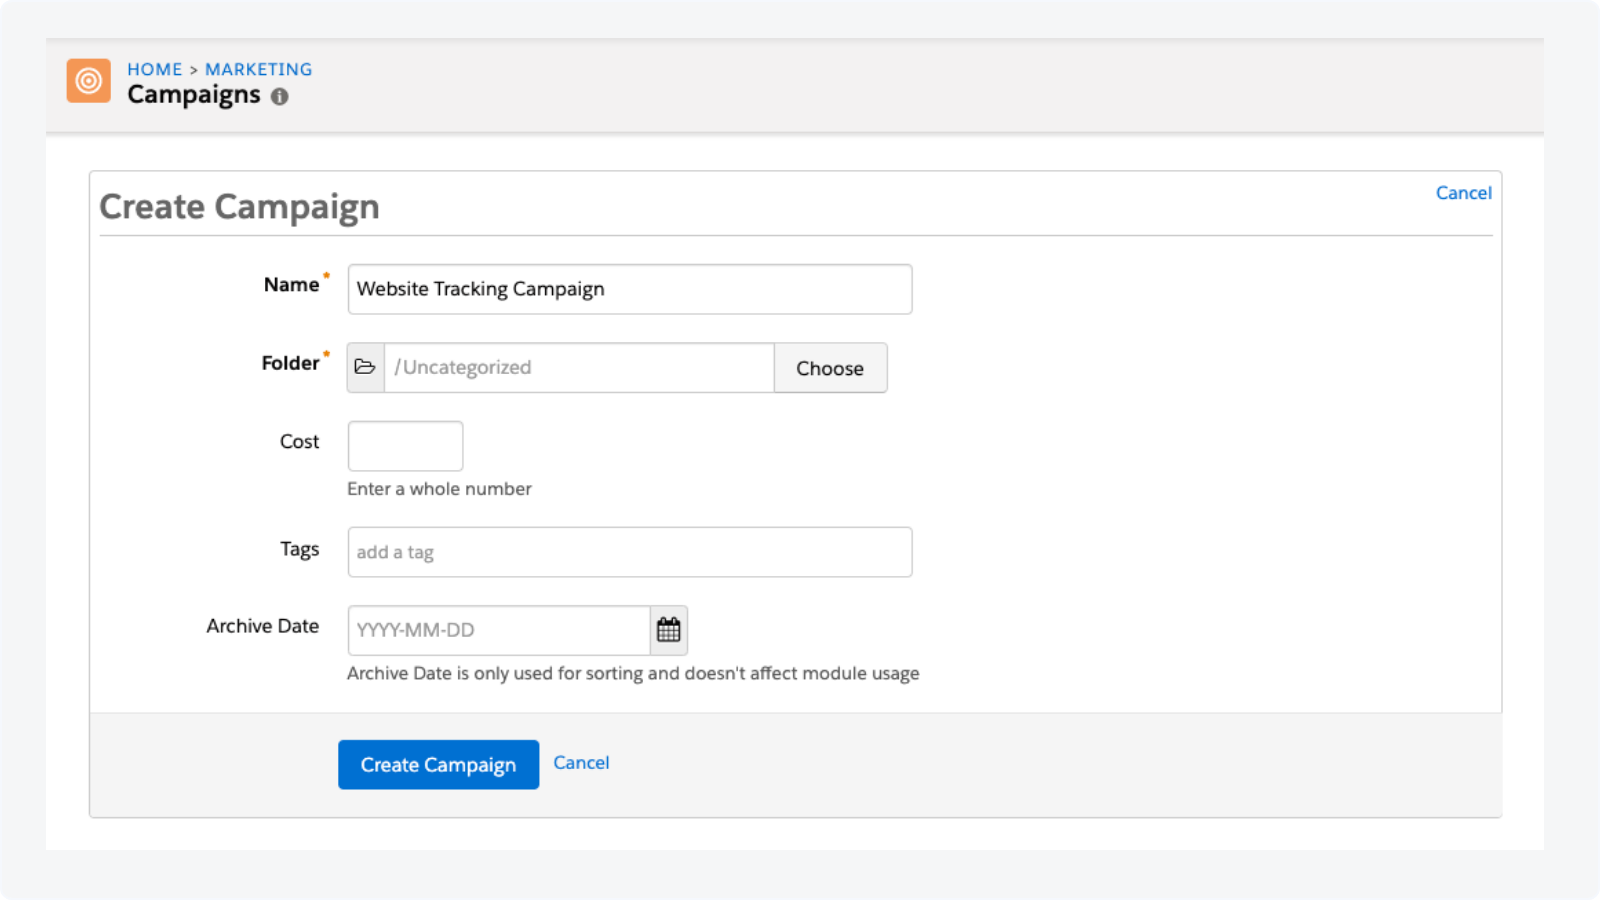 Creating a new campaign in Pardot to set up website tracking